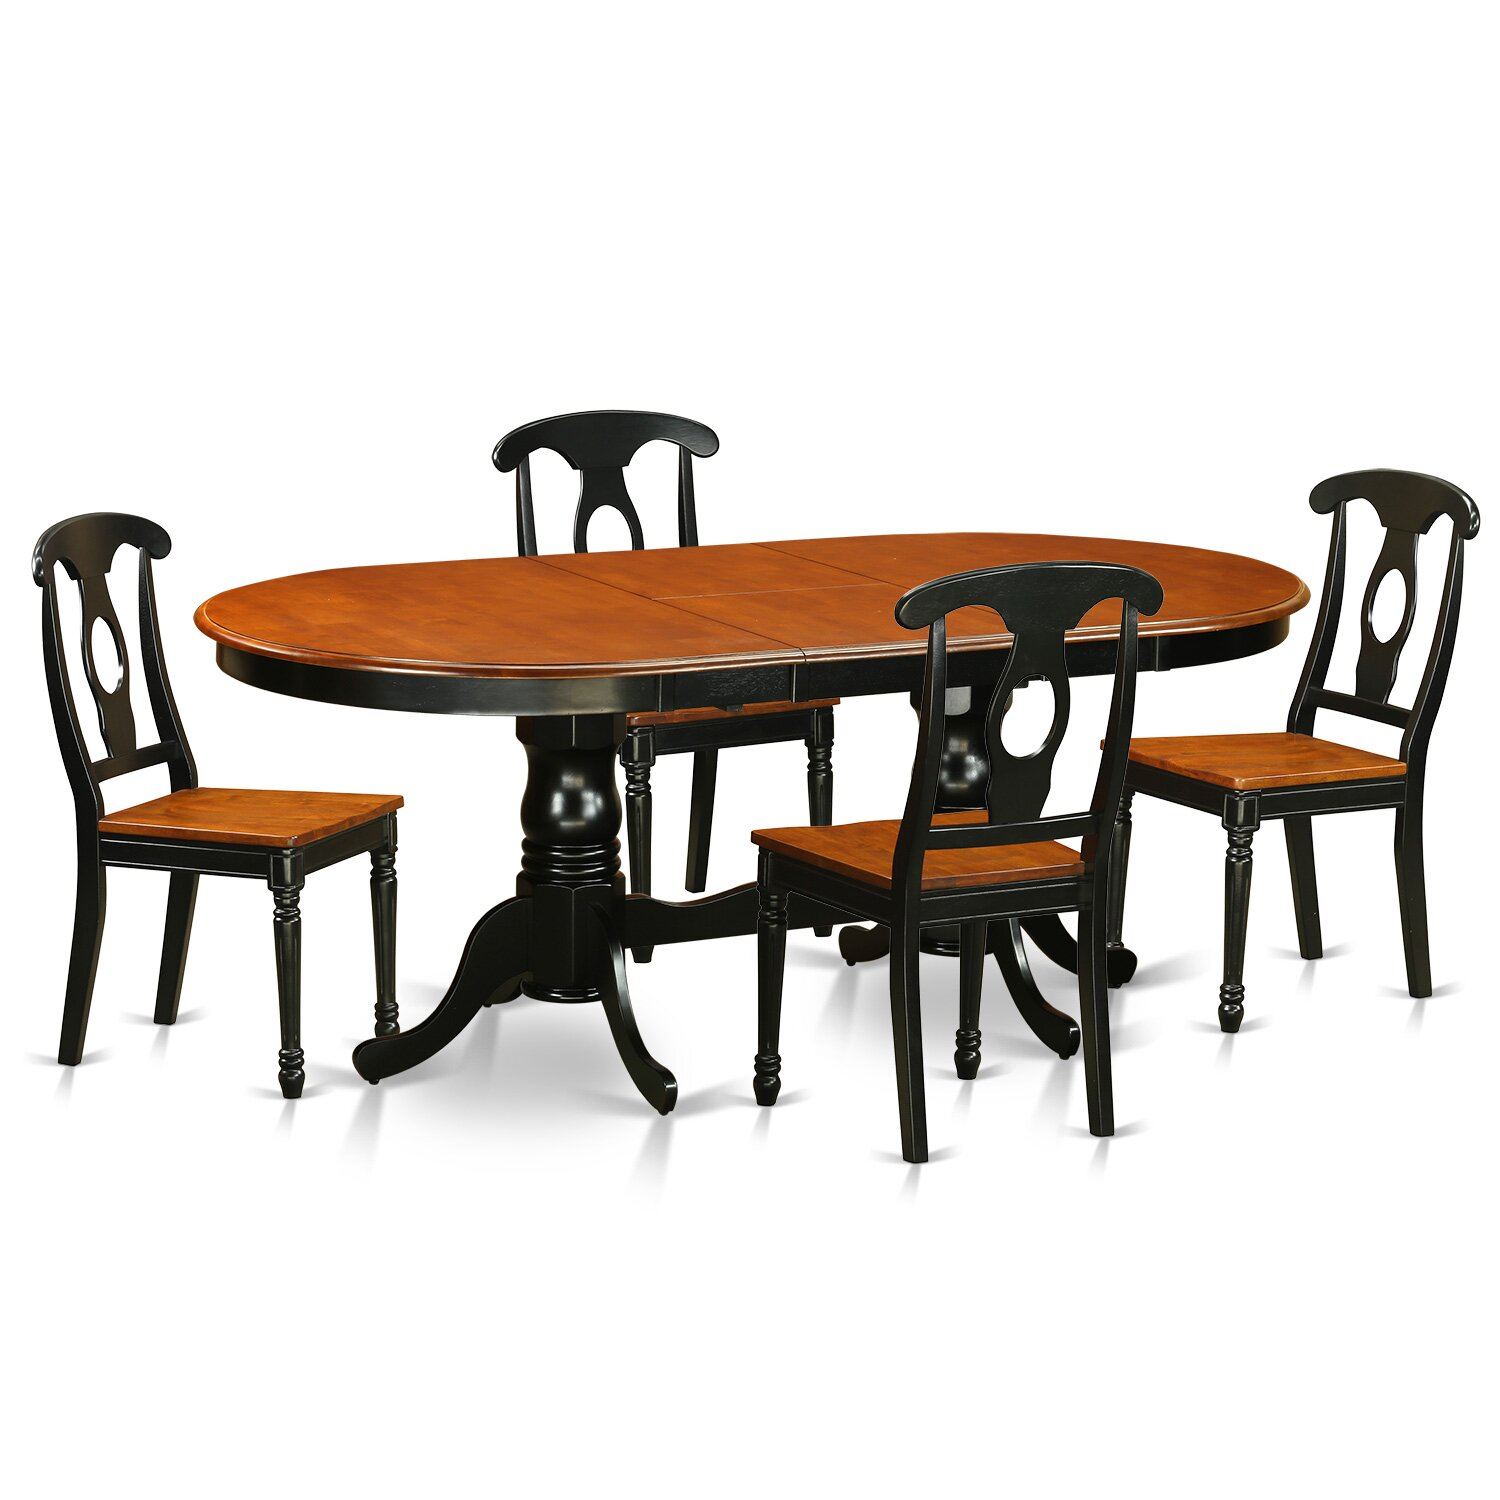 PC Dining Room Set Dining Table With 4 Wood Dining Chairs PLKE5 BCH